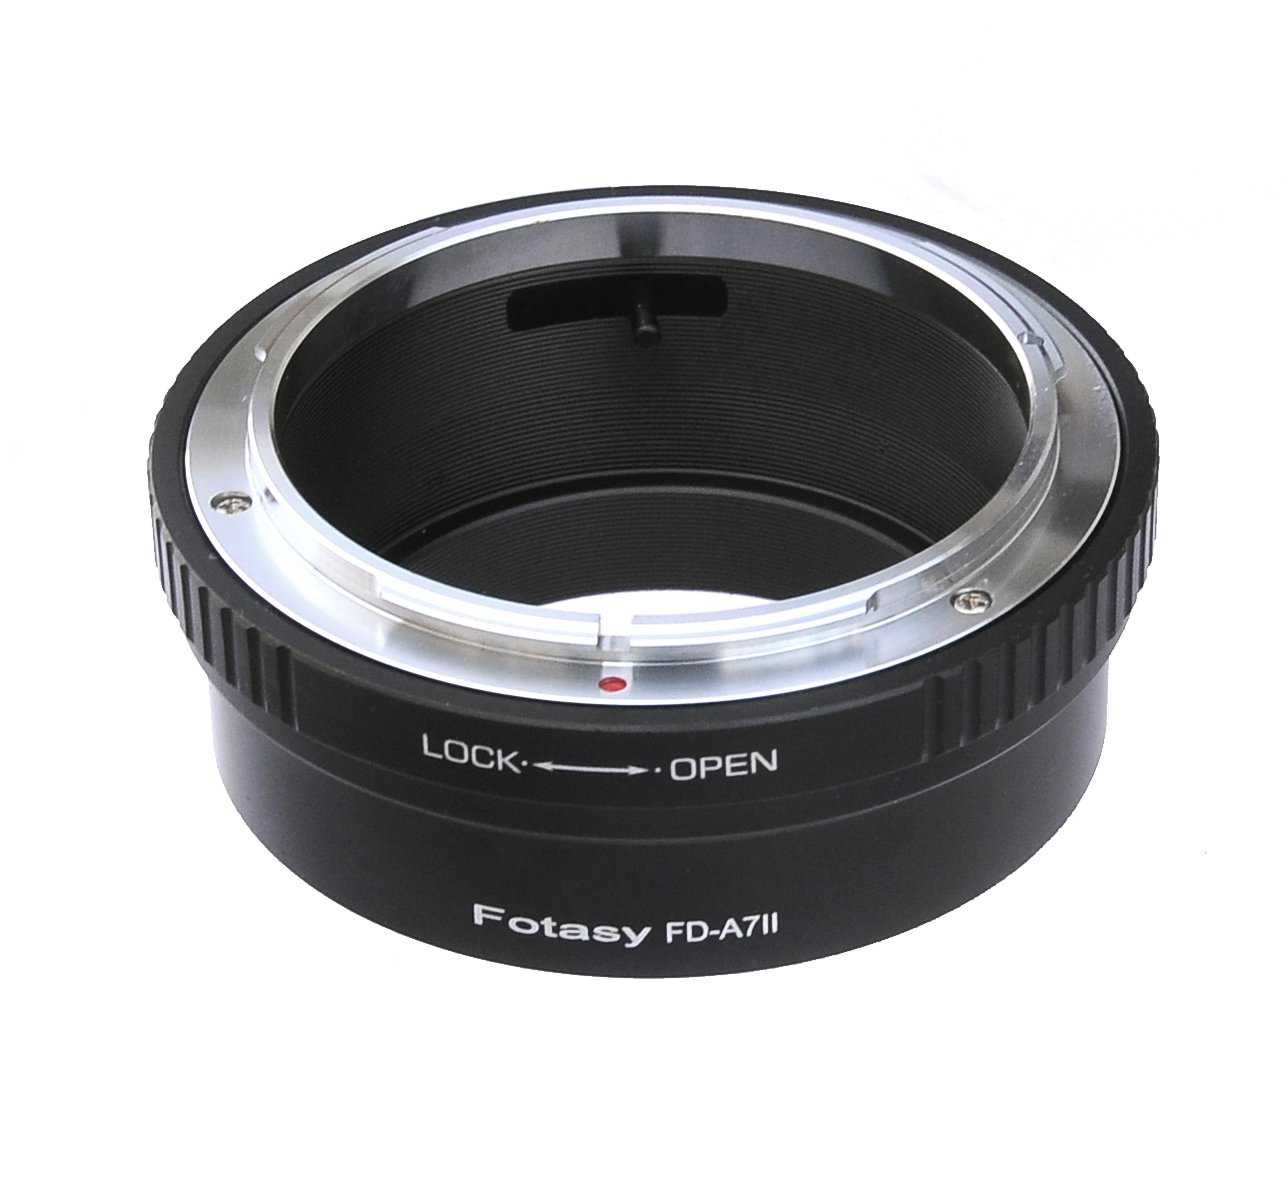 Fotasy Canon FD Lens to Sony E-Mount Adapter, Compatible with Canon FD Lens and Sony FE Mirrorless Cameras A7 A7 II A7 III A7R A7R II A7R III A7S A7S II A7S III A9 by Fotasy